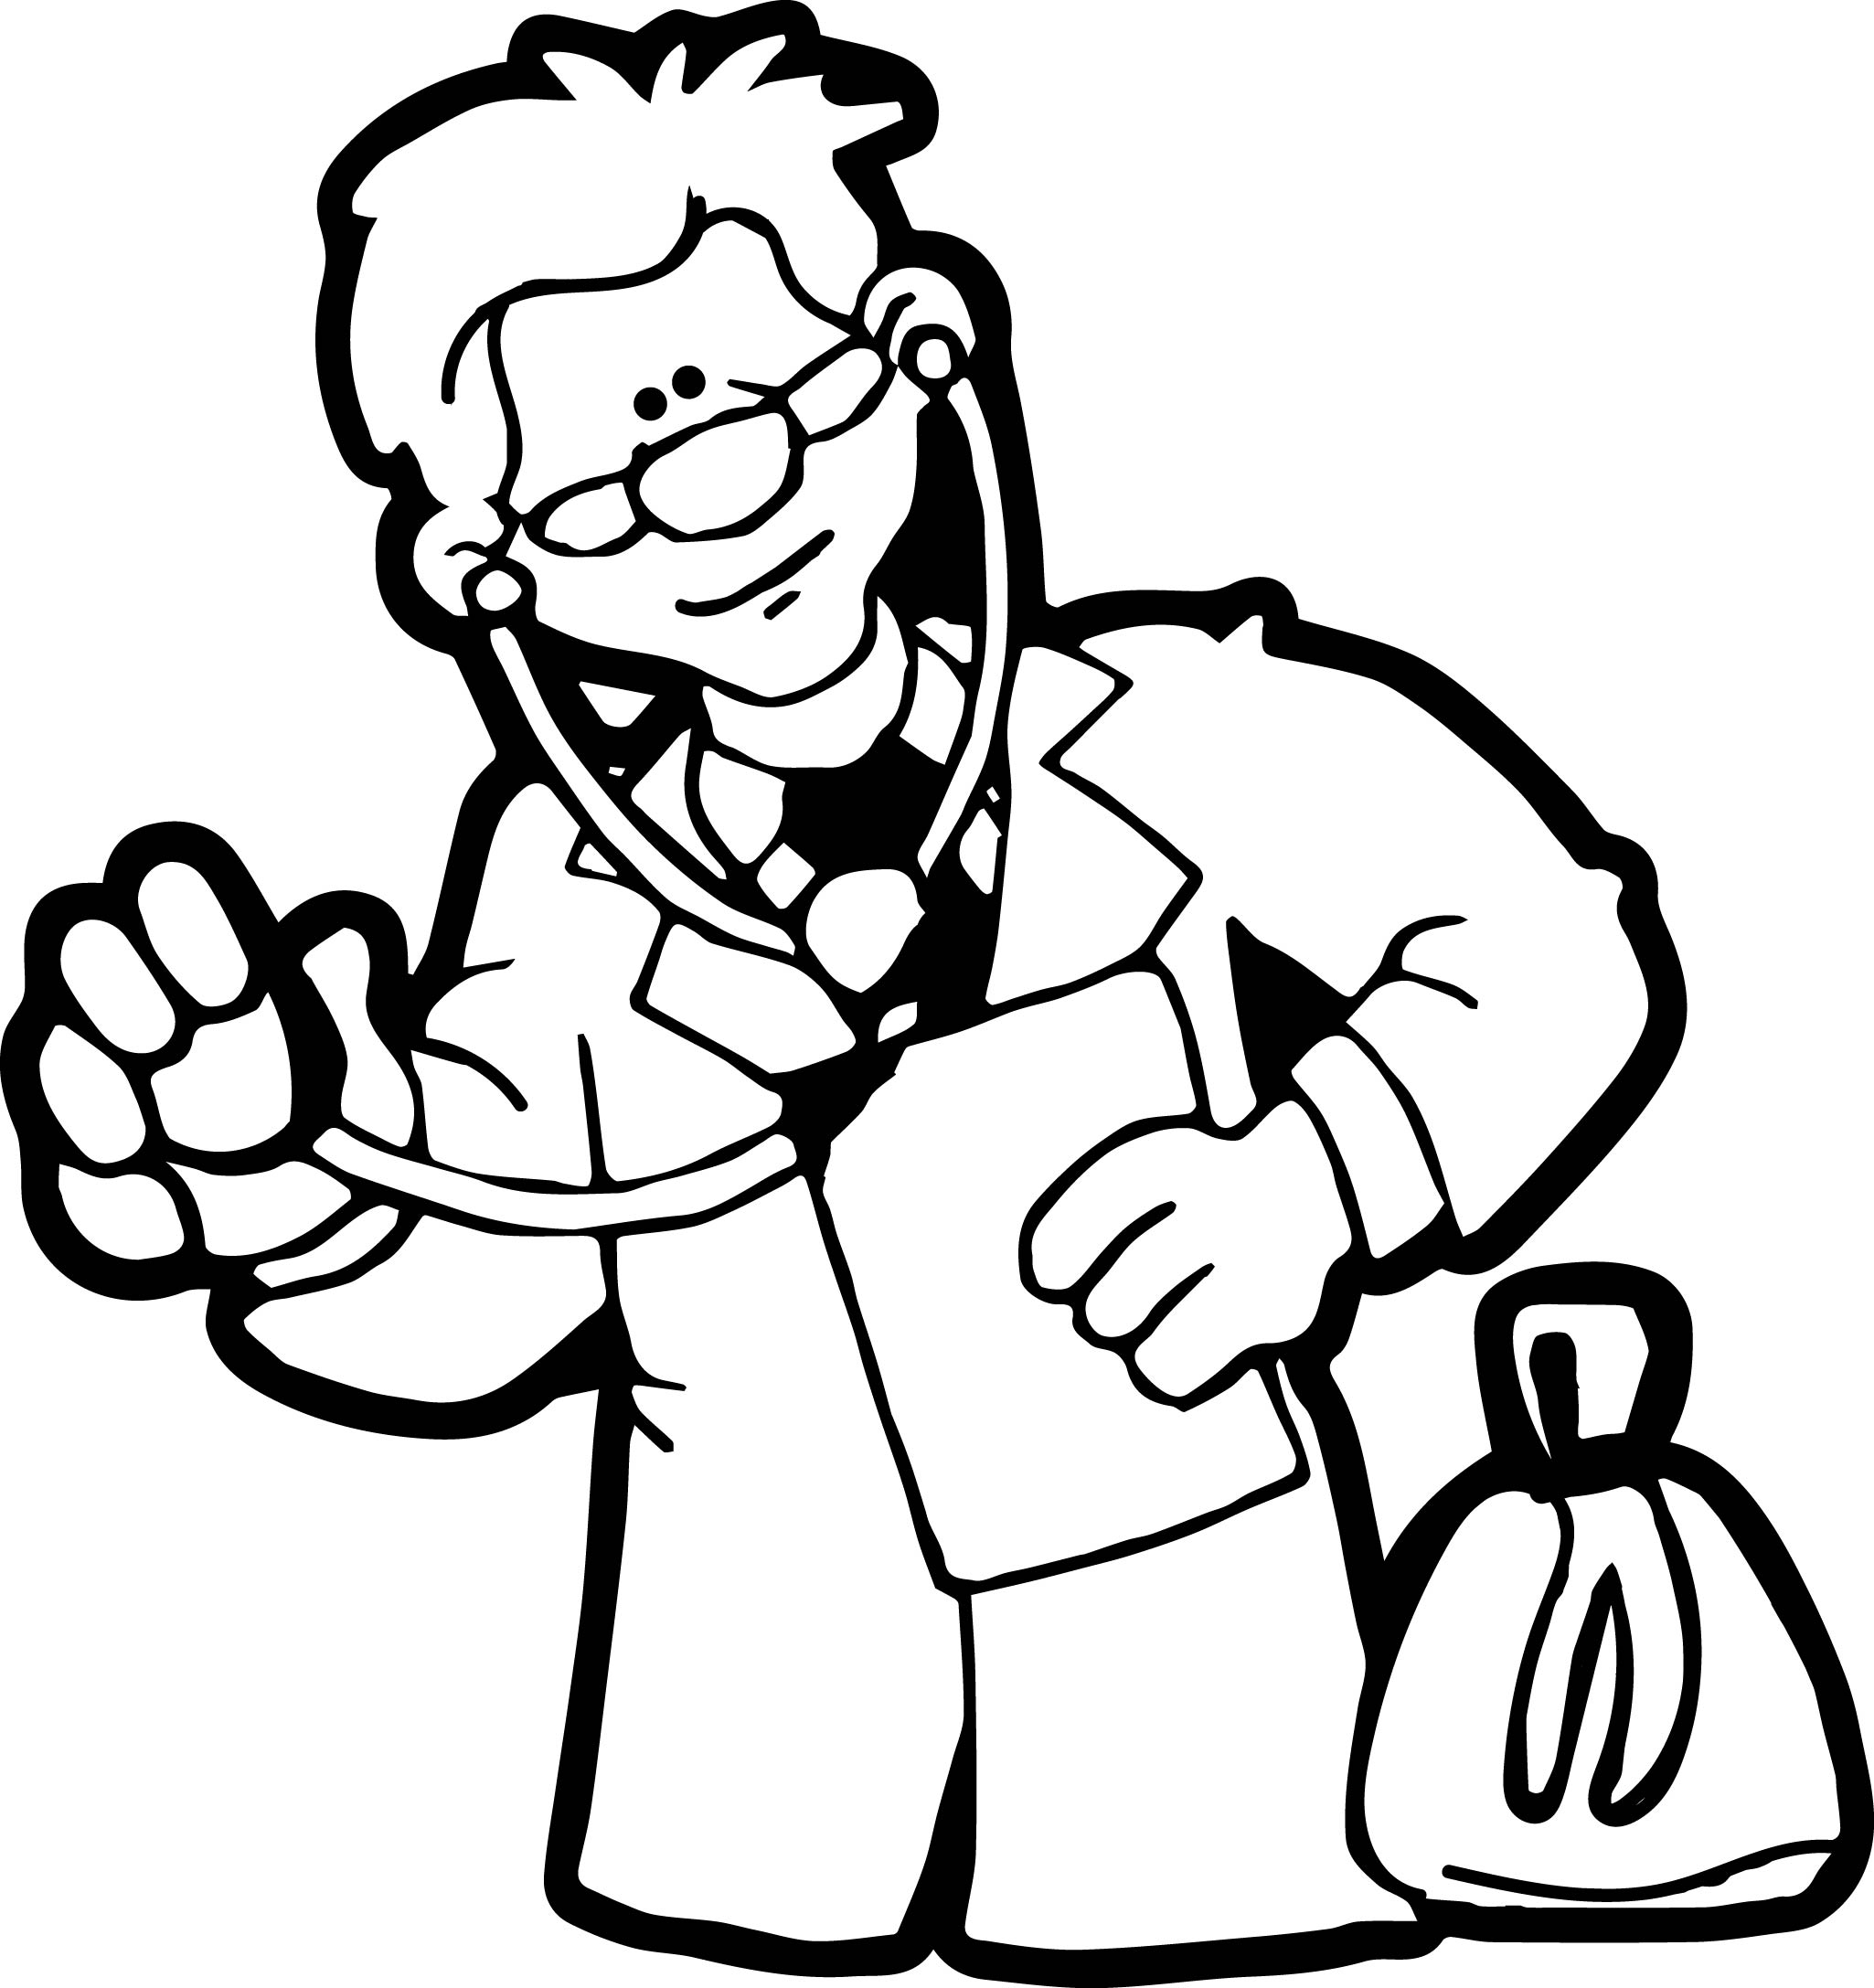 Doctor Look Coloring Page Wecoloringpage